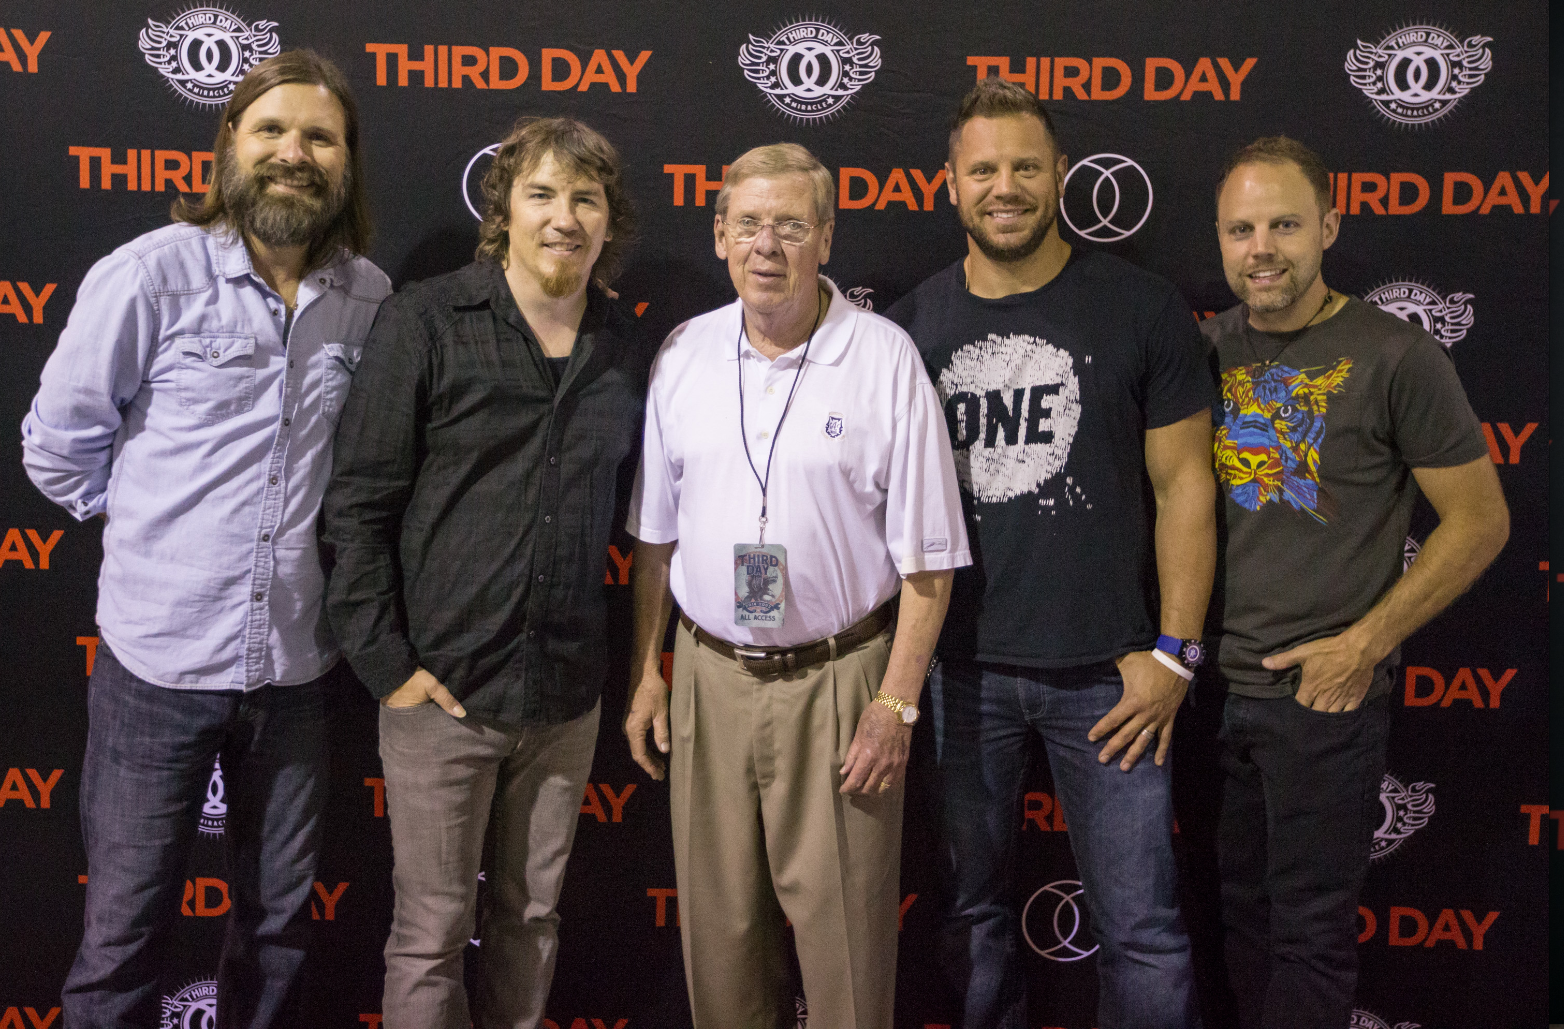 The band Third Day with Georgia Senator Johnny Isakson